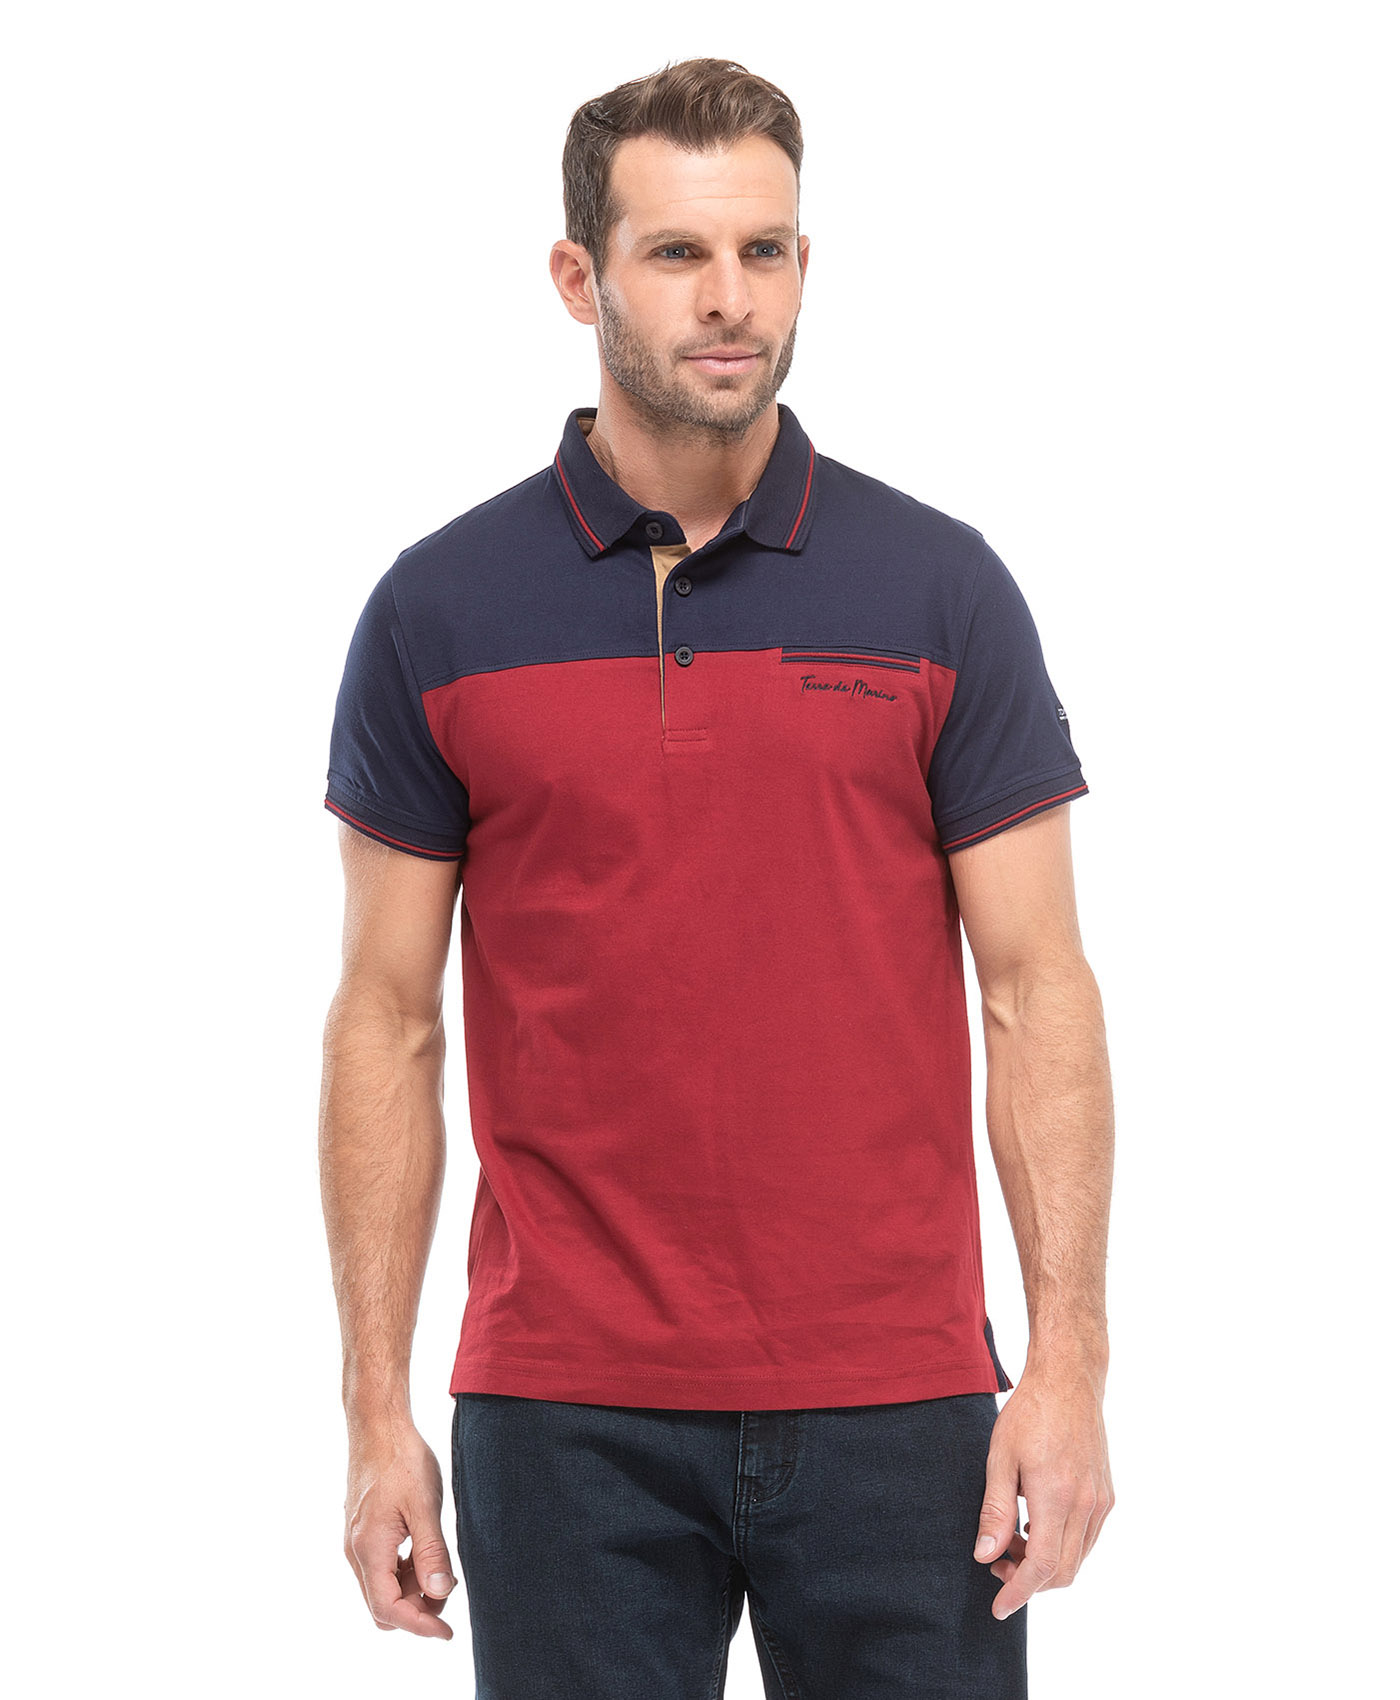 Polo manches courtes bicolore homme - Mode marine Homme